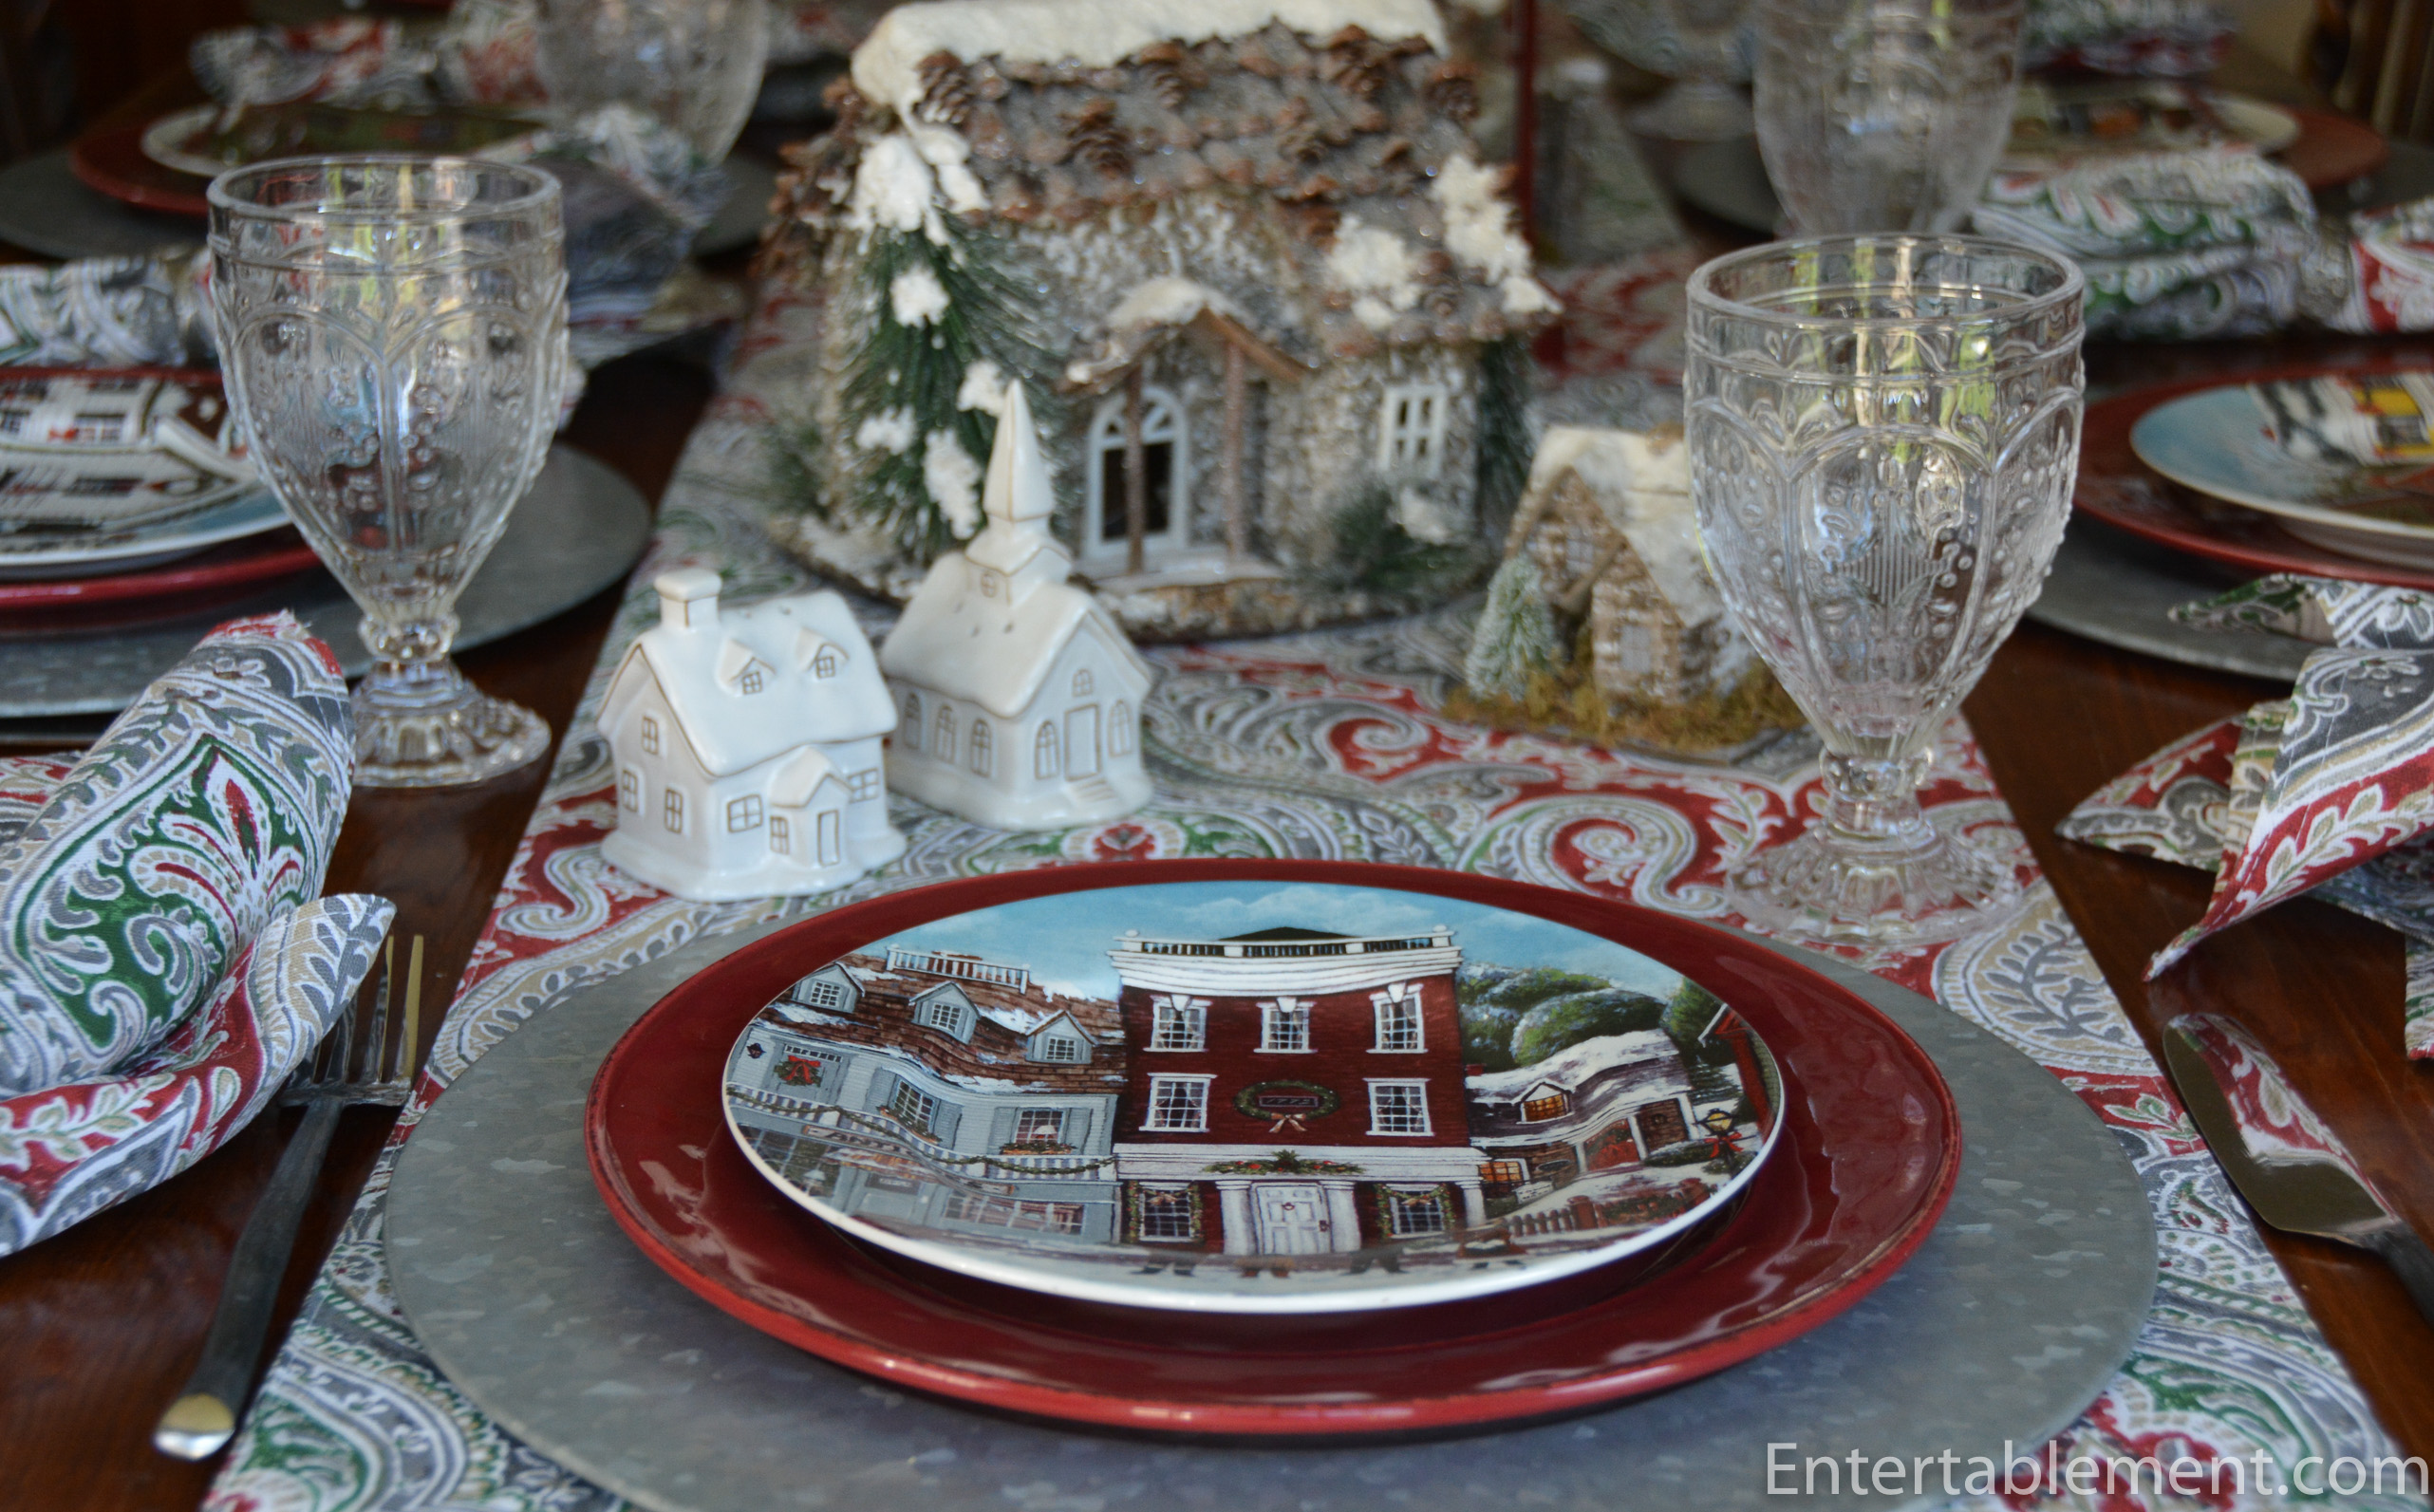 Christmas Village By David Carter Brown Entertablement